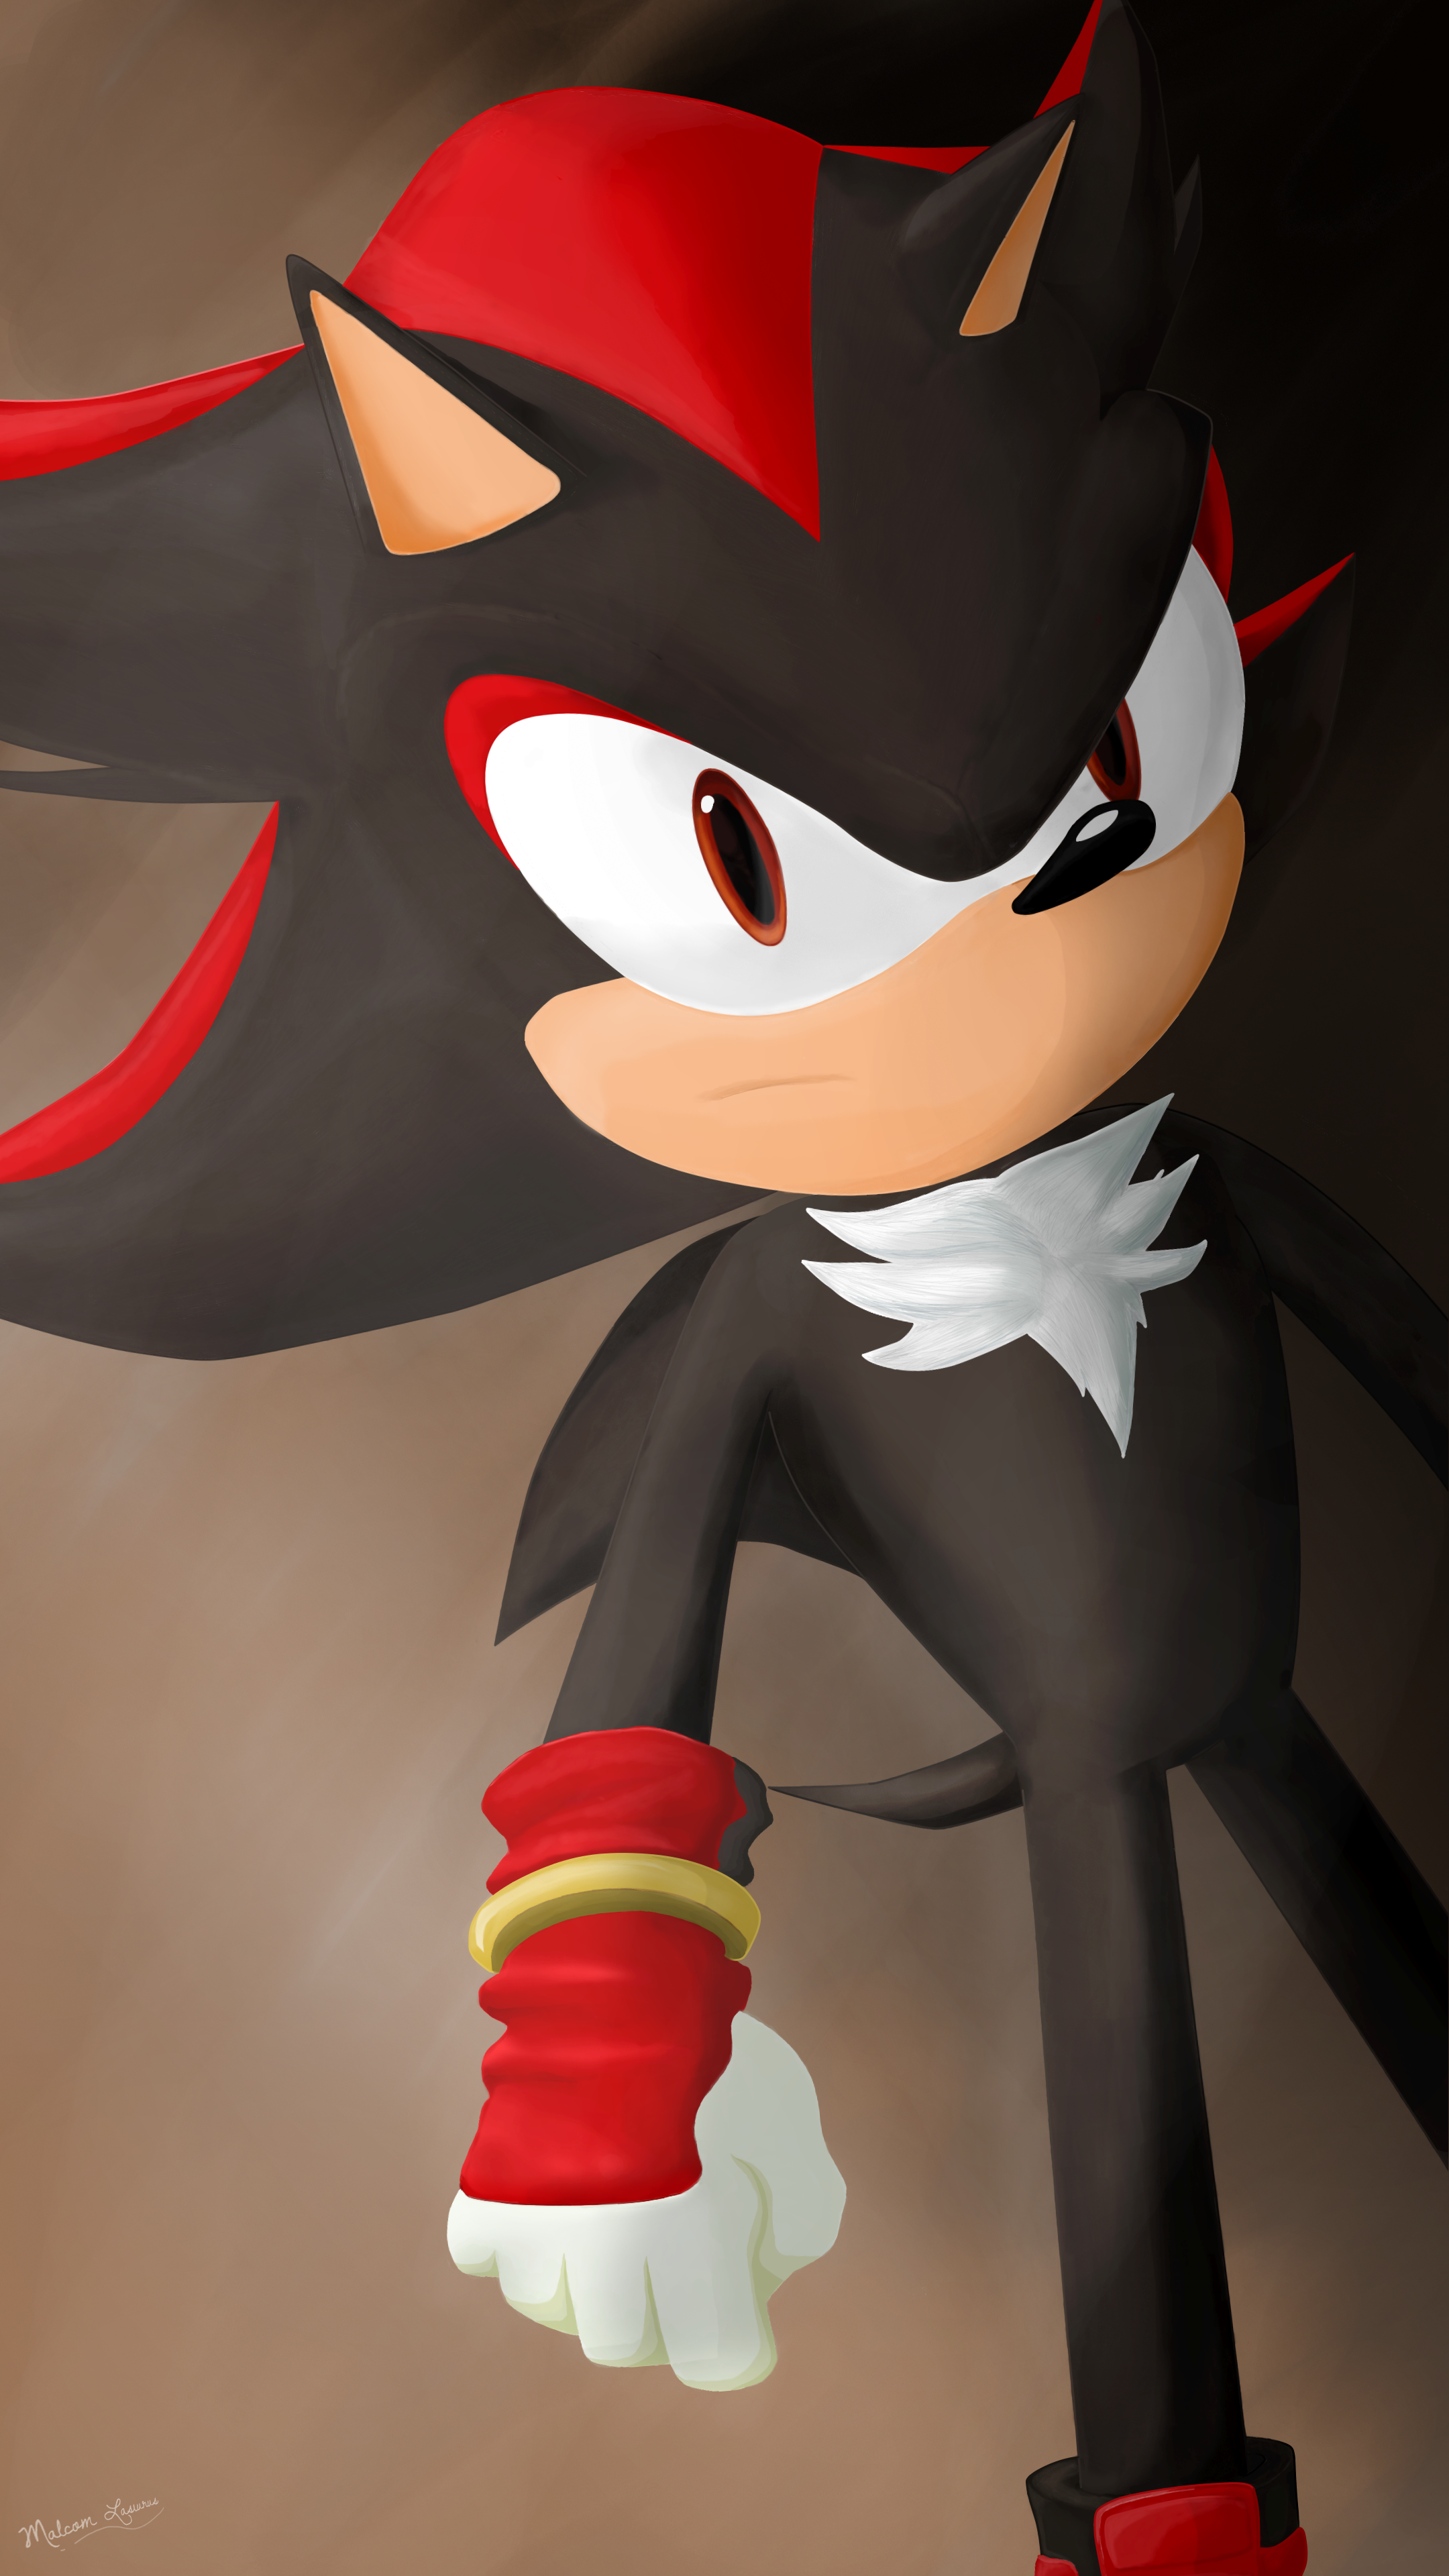 Shadow The Hedgehog From Sonic Boom In 4k By Malcom Lasiurus On Deviantart